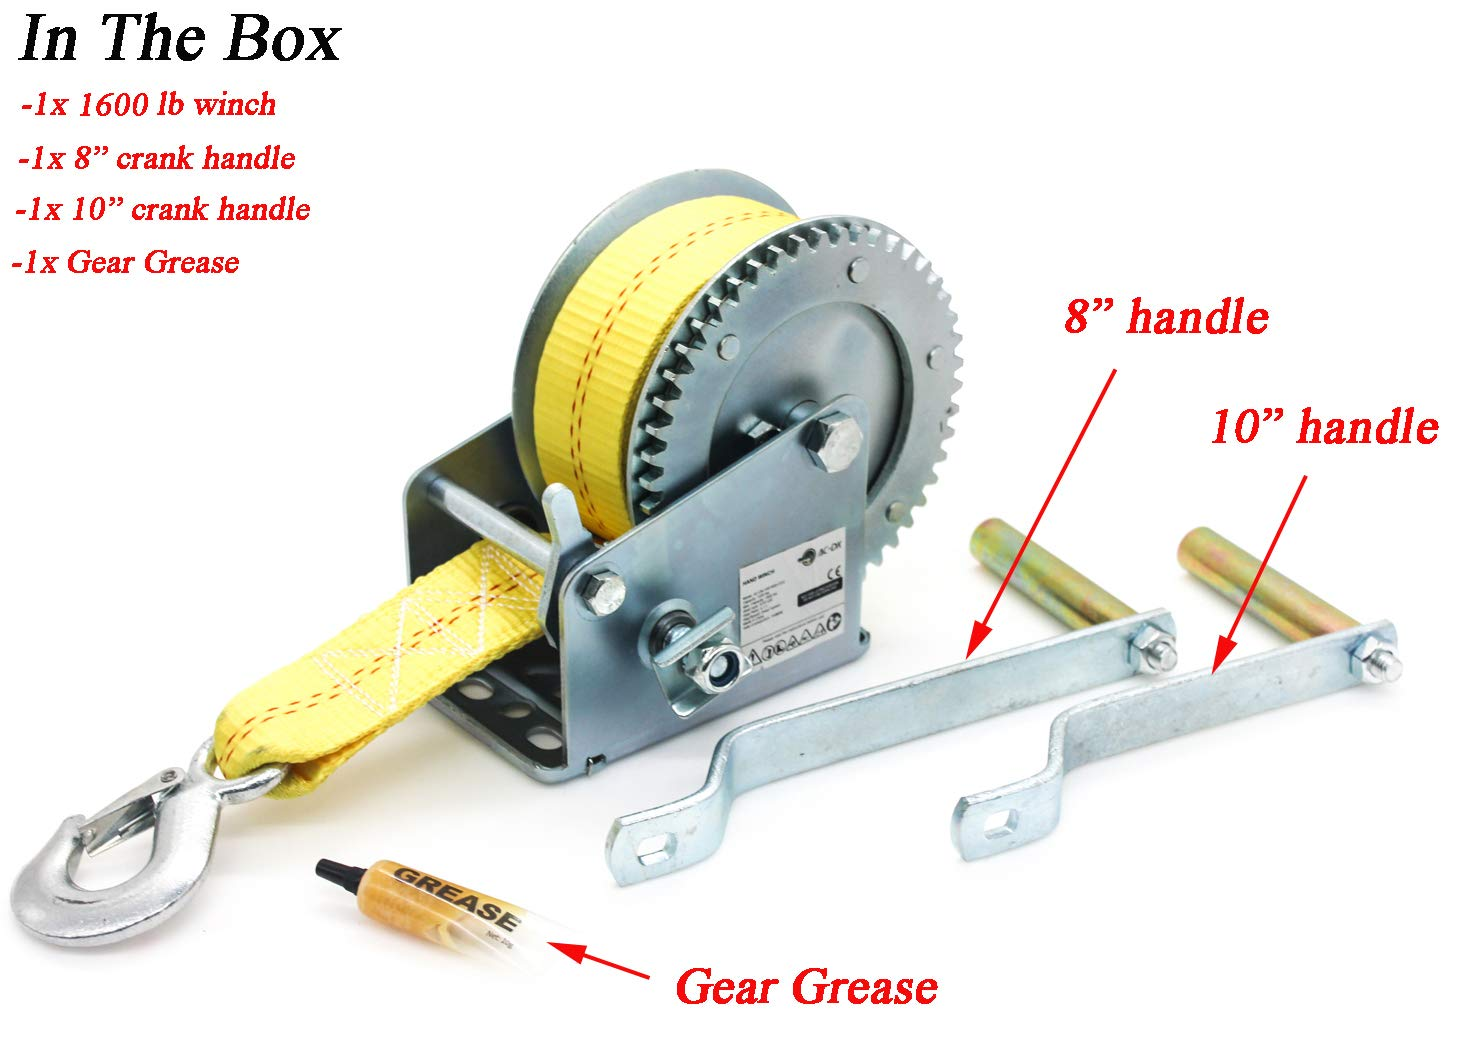 AC-DK Manual Operation 1600 lb Hand Gear Winch Including Gear Grease and Two Crank Handles with 25 FT Strap for Pulling Boats Trailers and Trucks